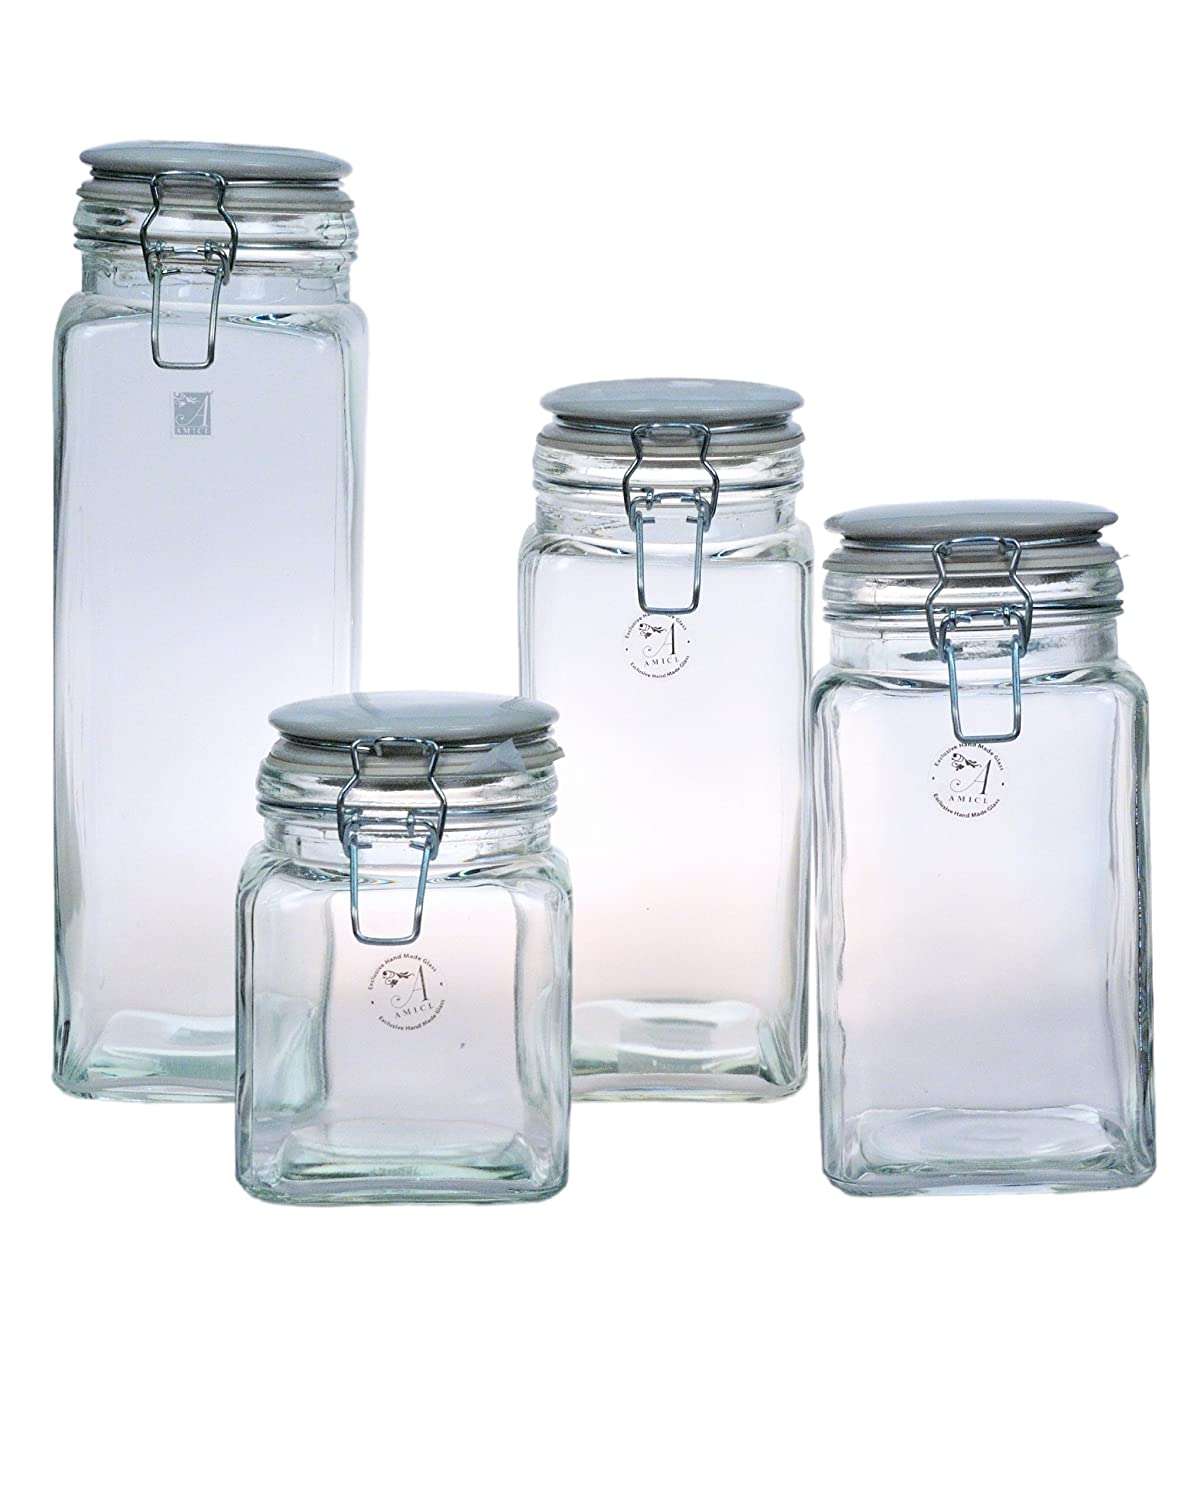 Small Ceramic Jars With Lids Glass Storage Jars Spice Canning Ceramic Bottle Kitchen